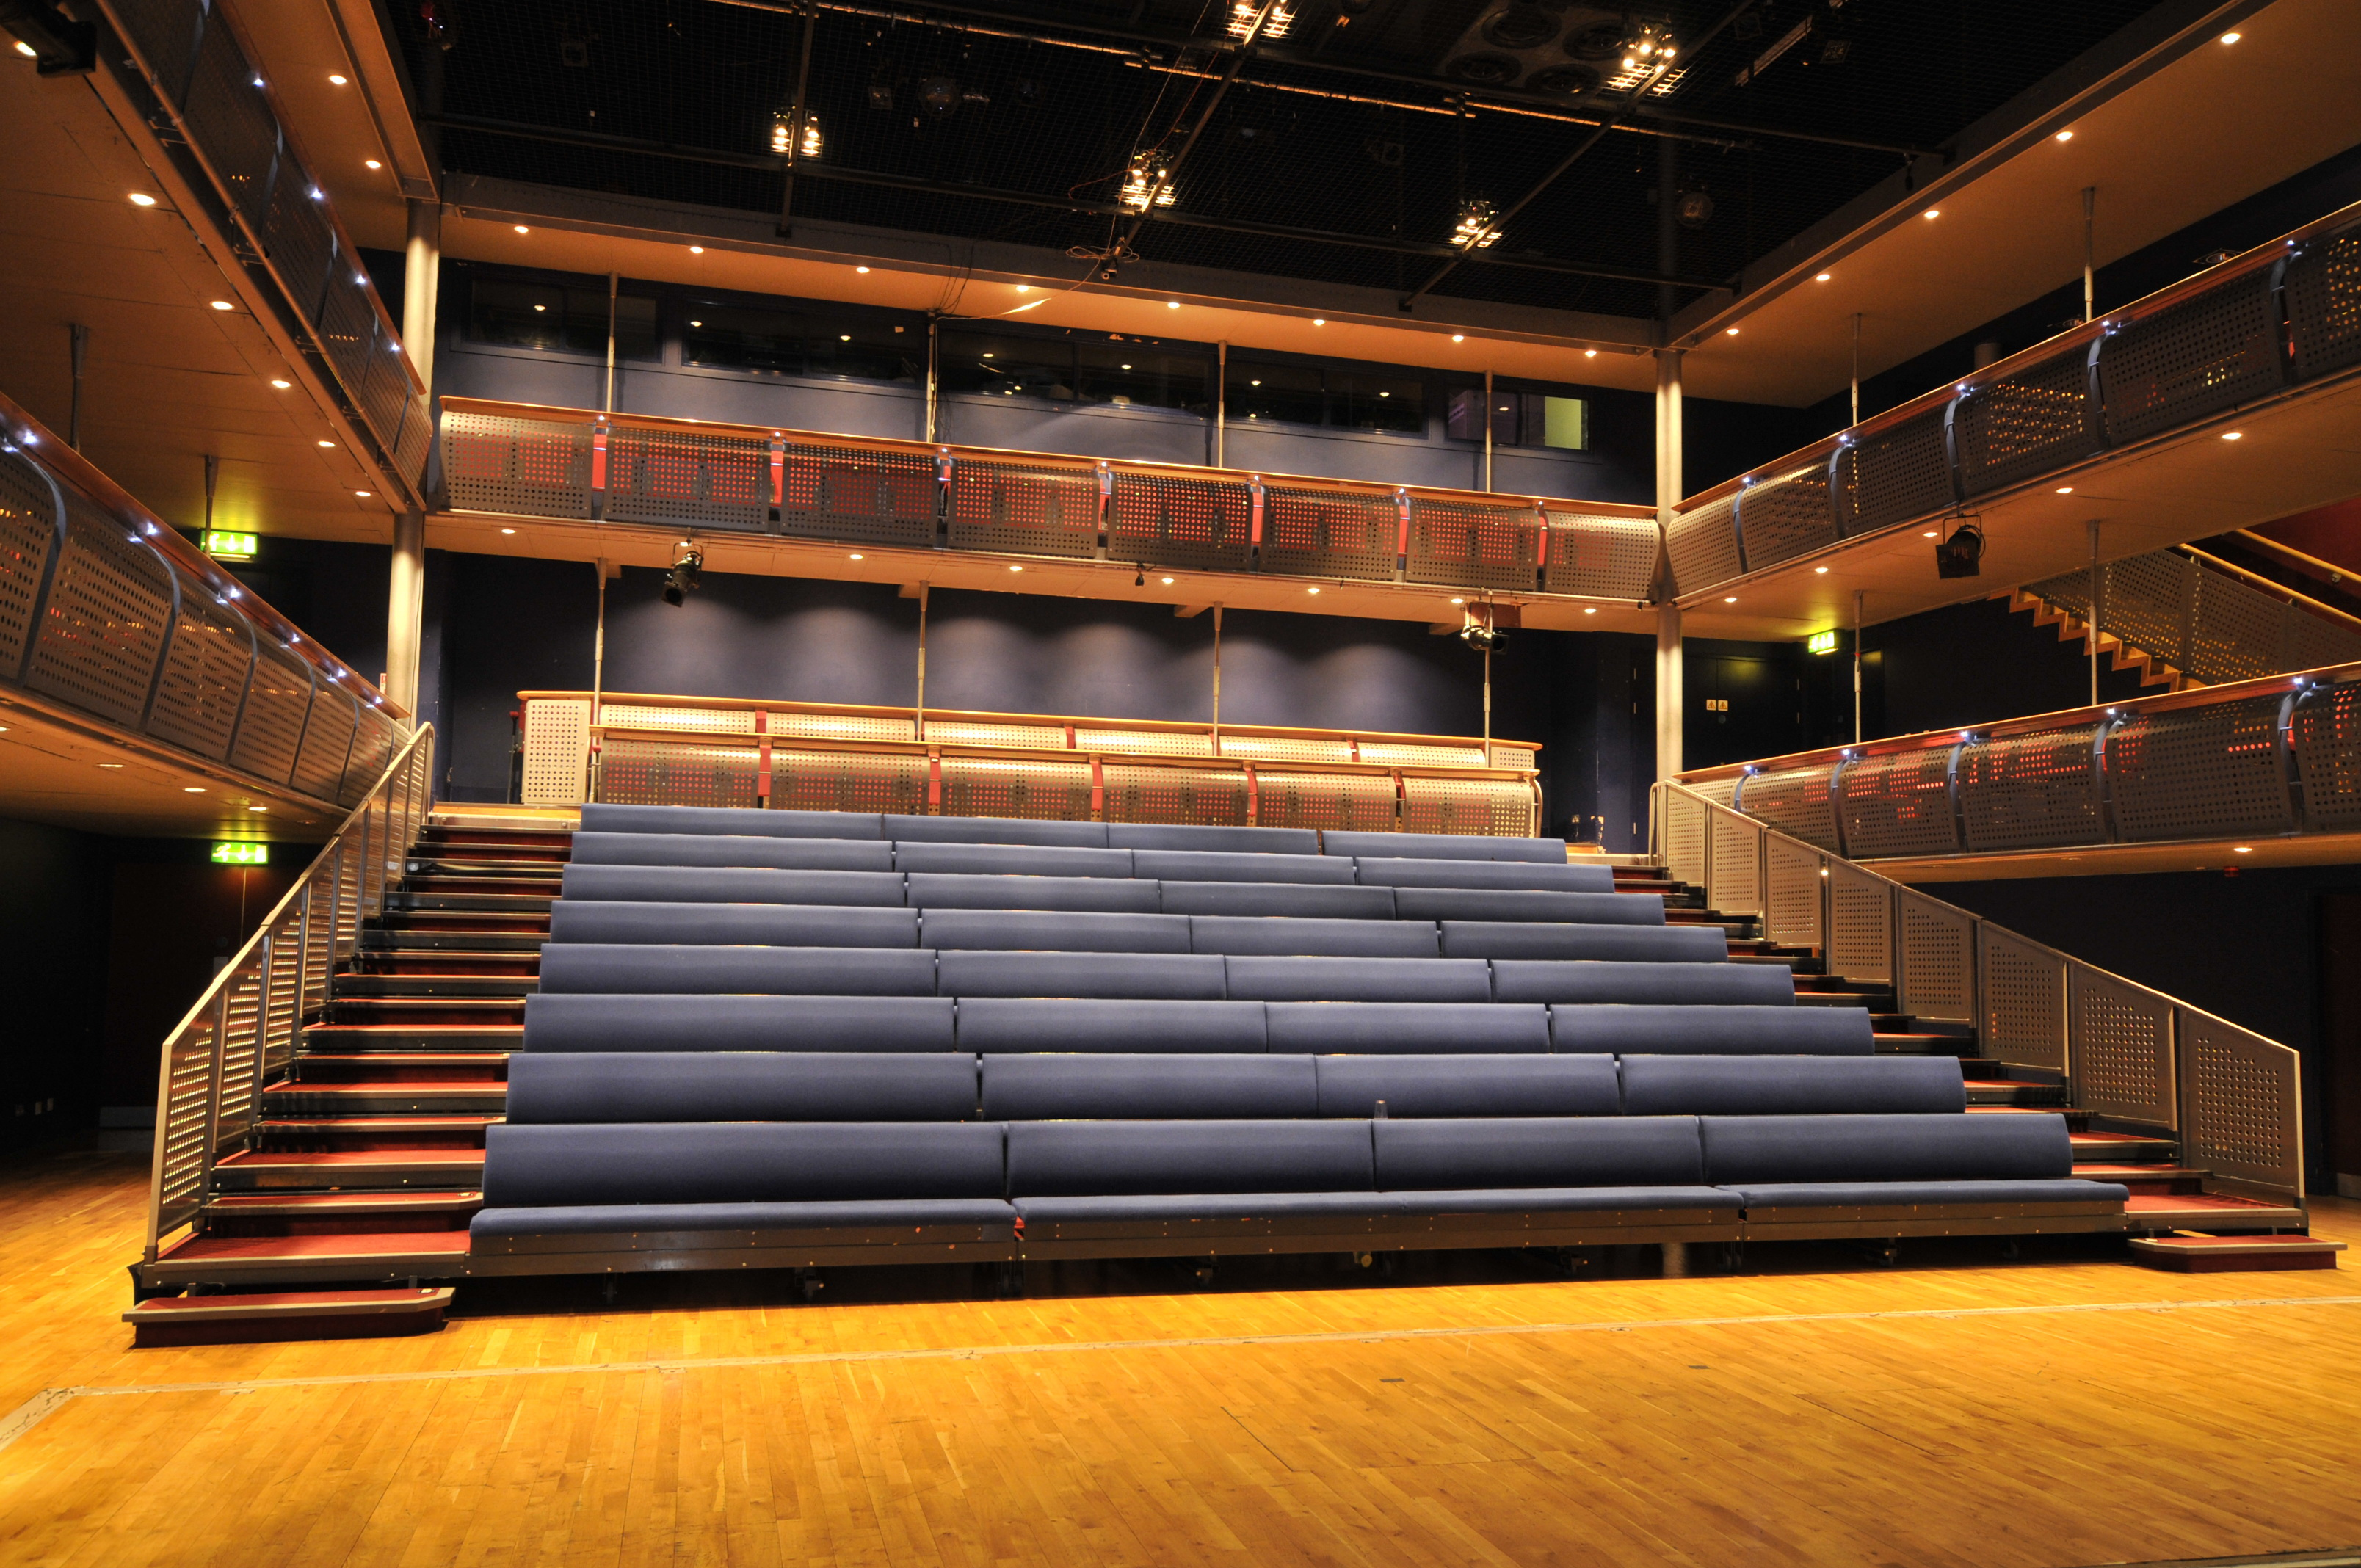 Auditorium: Stratford Circus Arts Centre